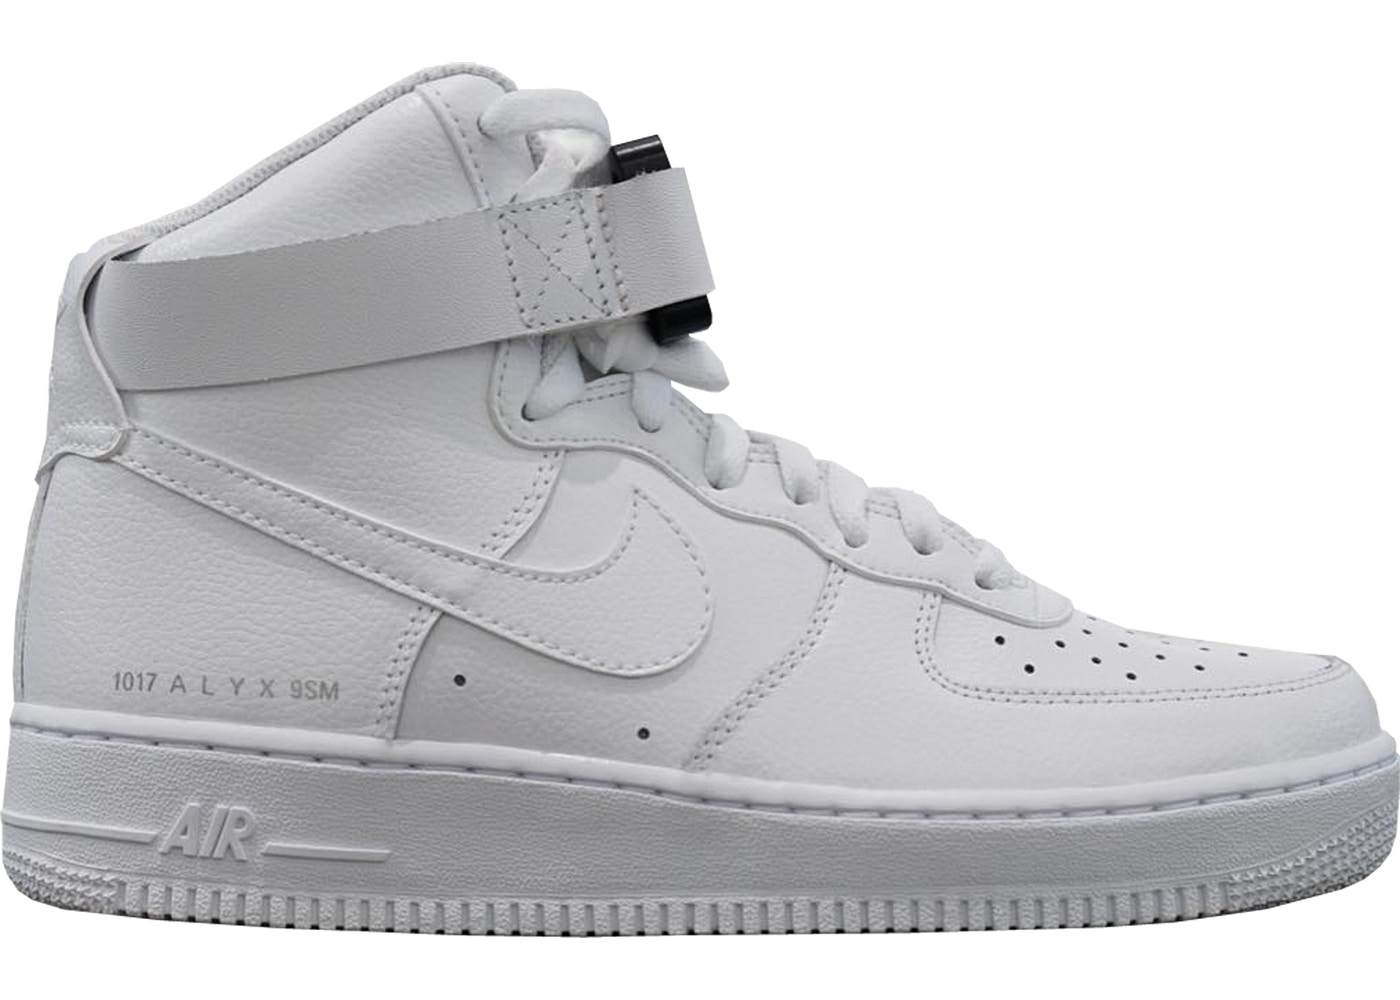 ALYX x Nike Air Force 1 White For Sale